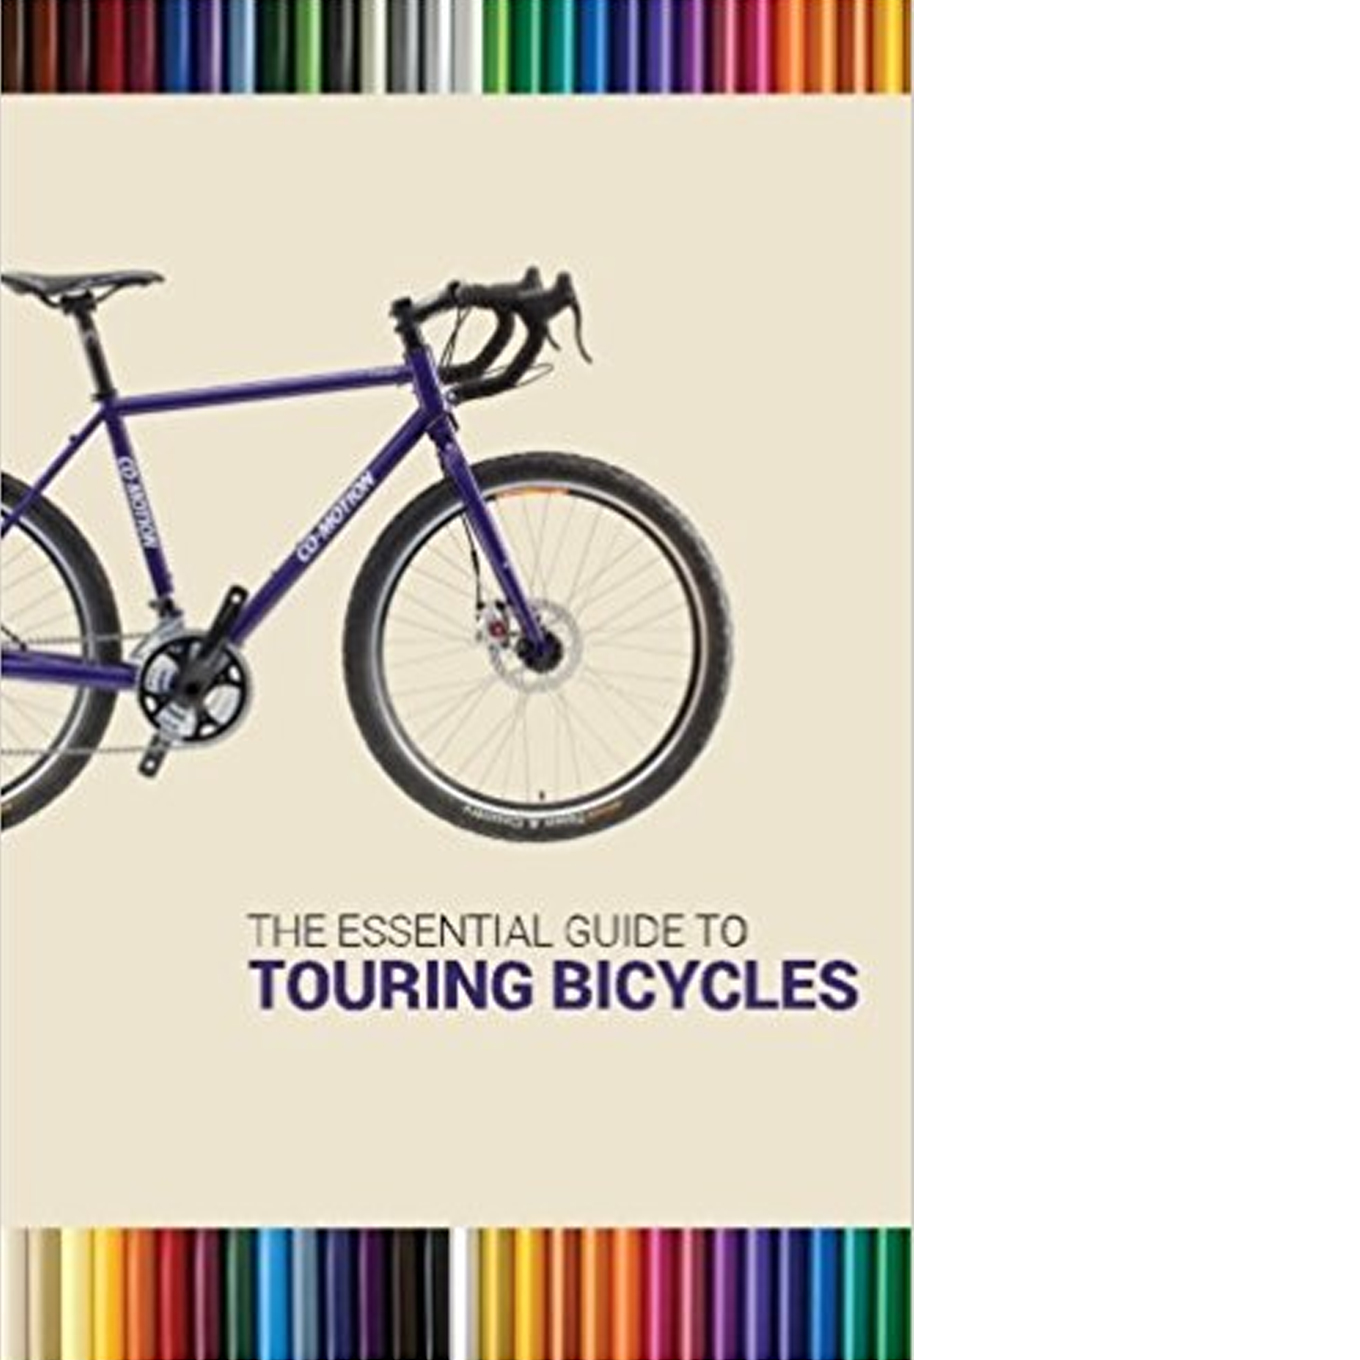 The Essential Guide To Touring Bicycles - December 18, 2000  Pick the right bicycle for your travels and you'll be sure to come home with those wonderful bicycle touring memories you've been dreaming about. But pick the wrong bicycle and your trip could be over before it has even had a chance to begin.    $15.95 Paperback